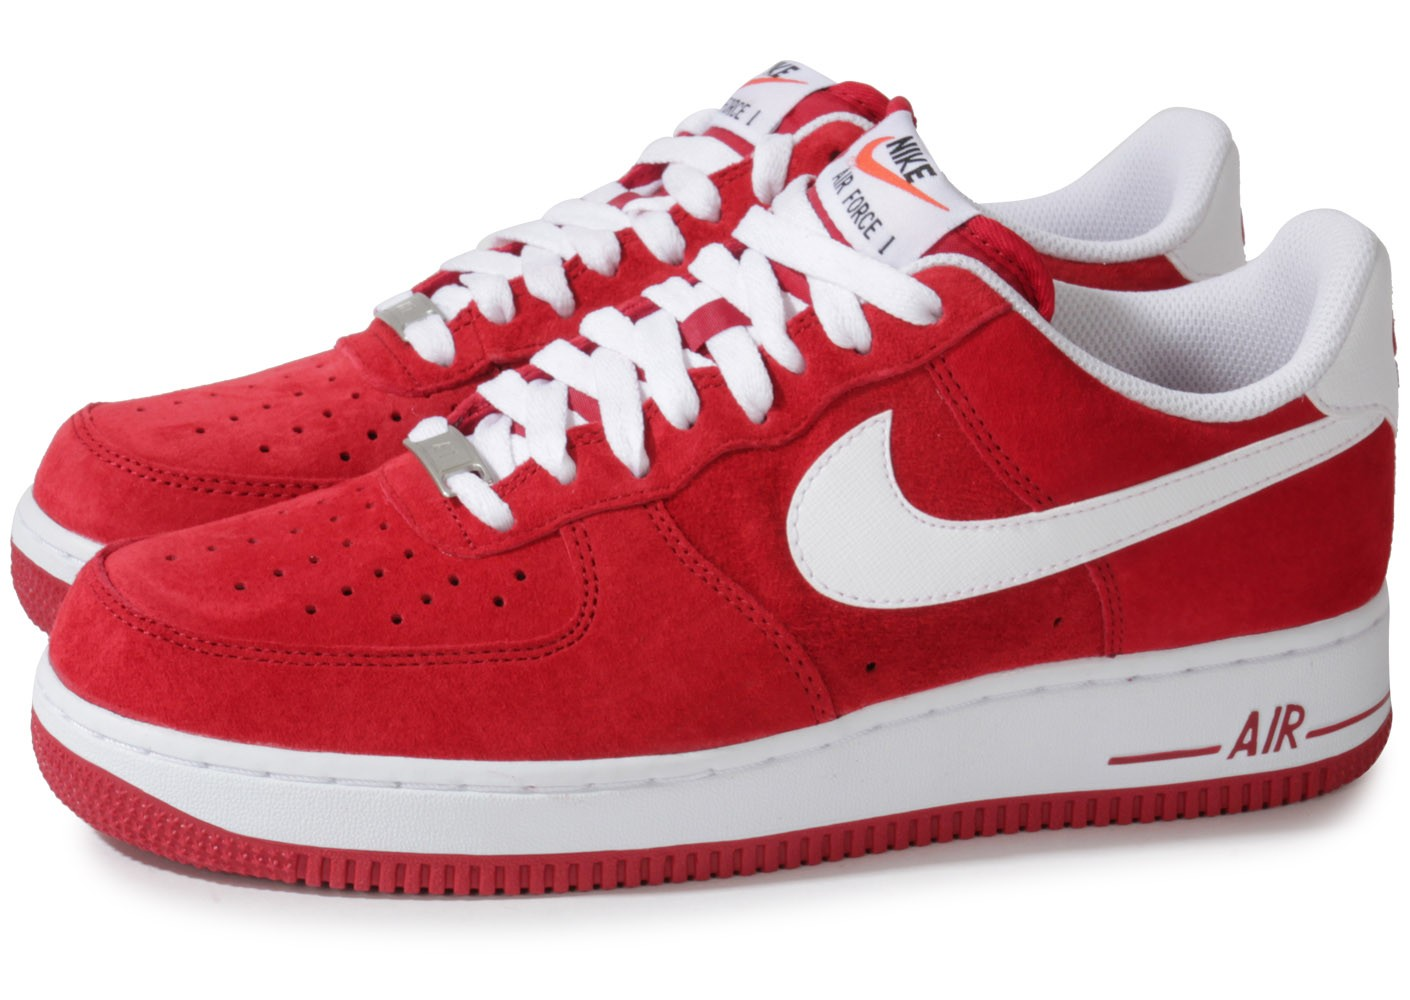 Nike Air Force 1 Suede Rouge - Chaussures Baskets homme - Chausport